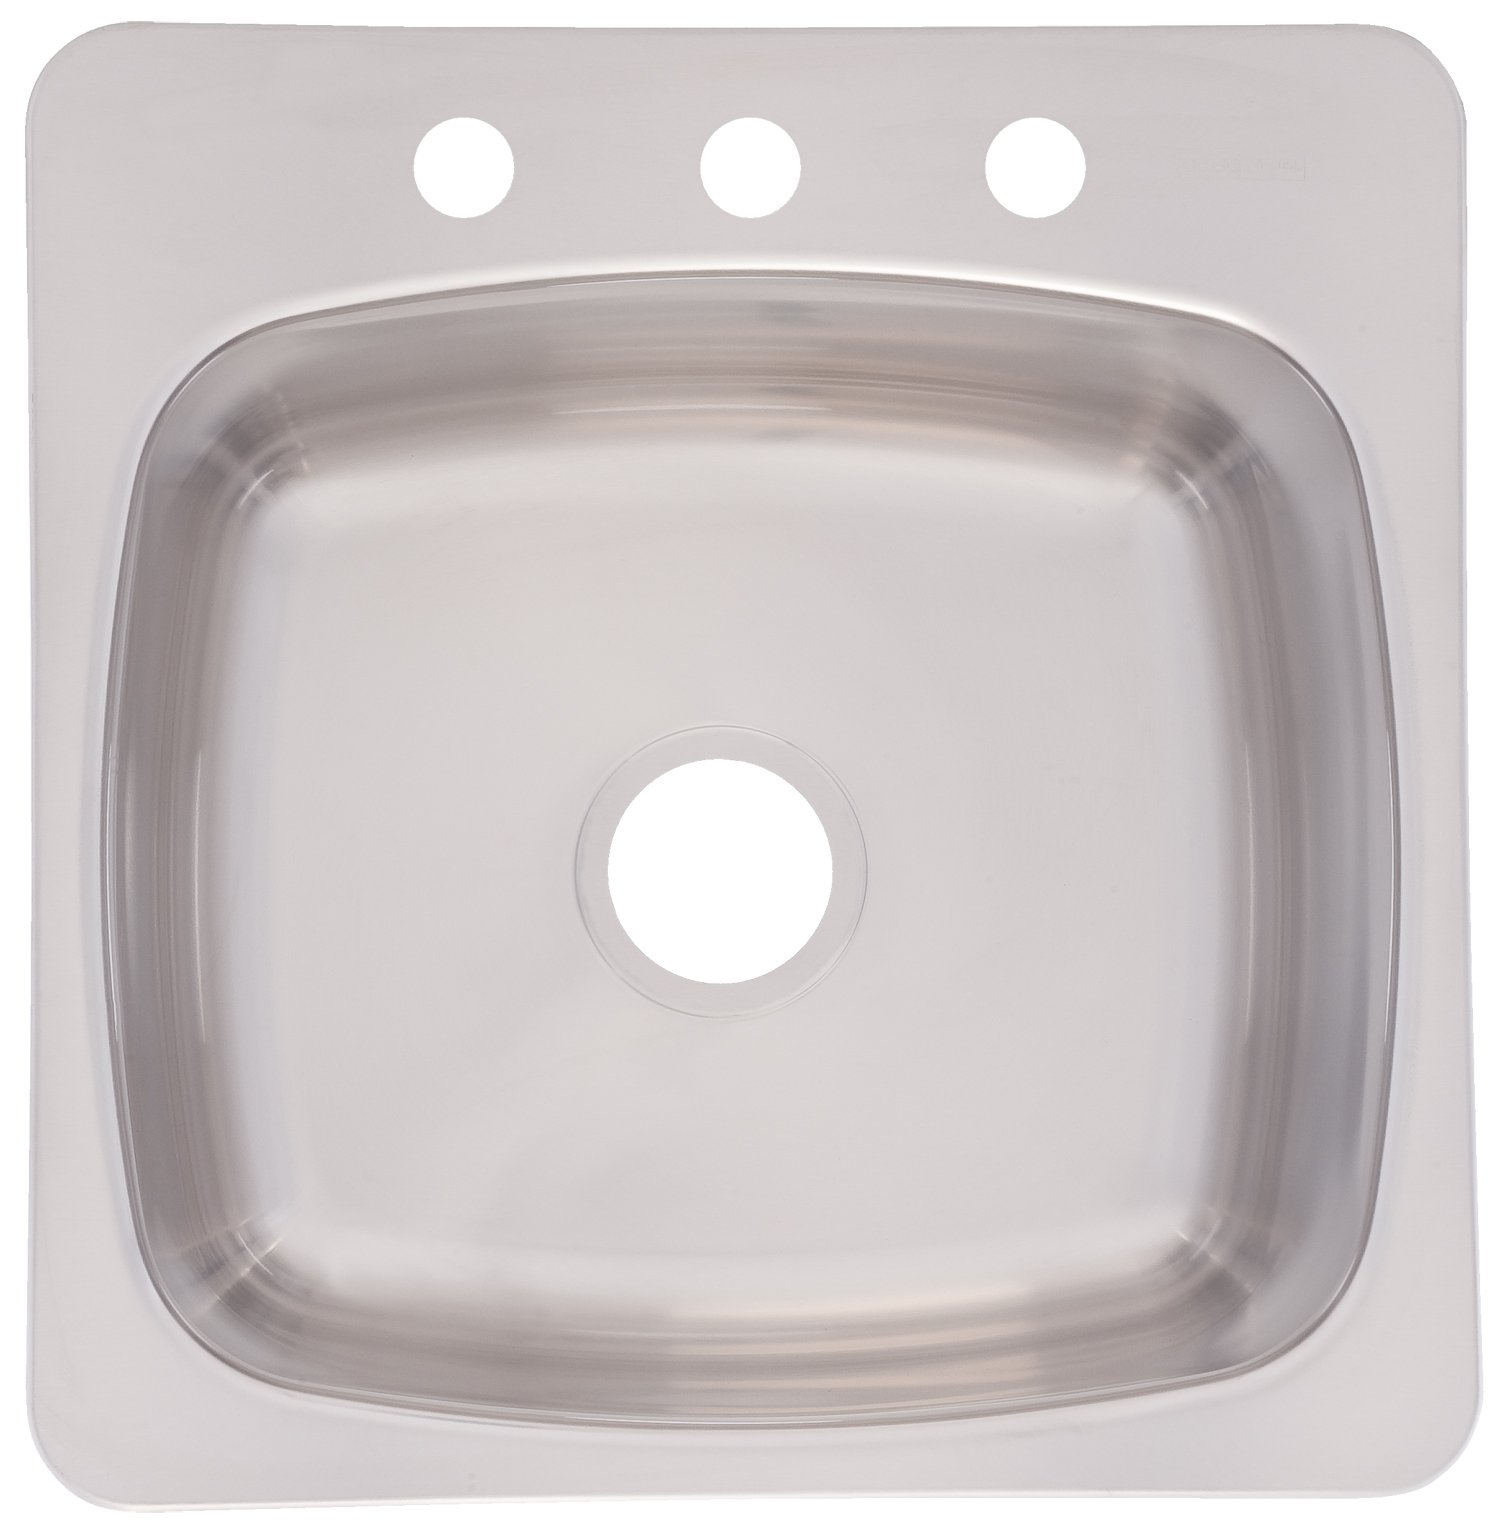 Franke USA SL103BX Sink, 20 Inches, Stainless Steel by FrankeUSA